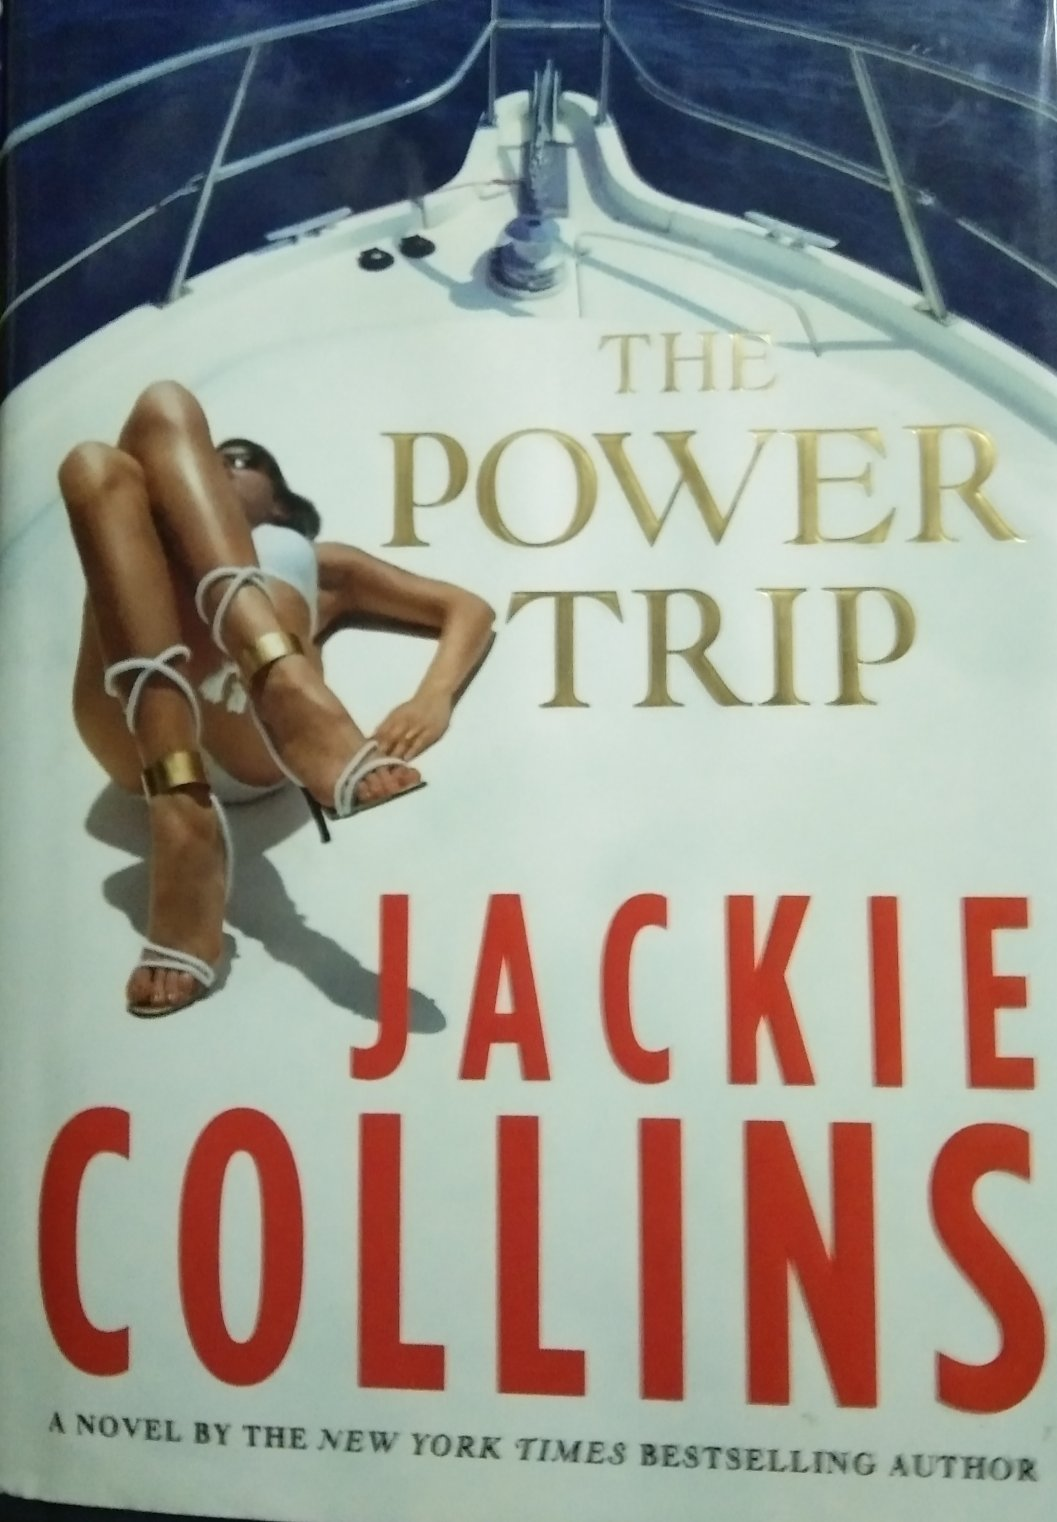 The Power Trip by Jackie Collins